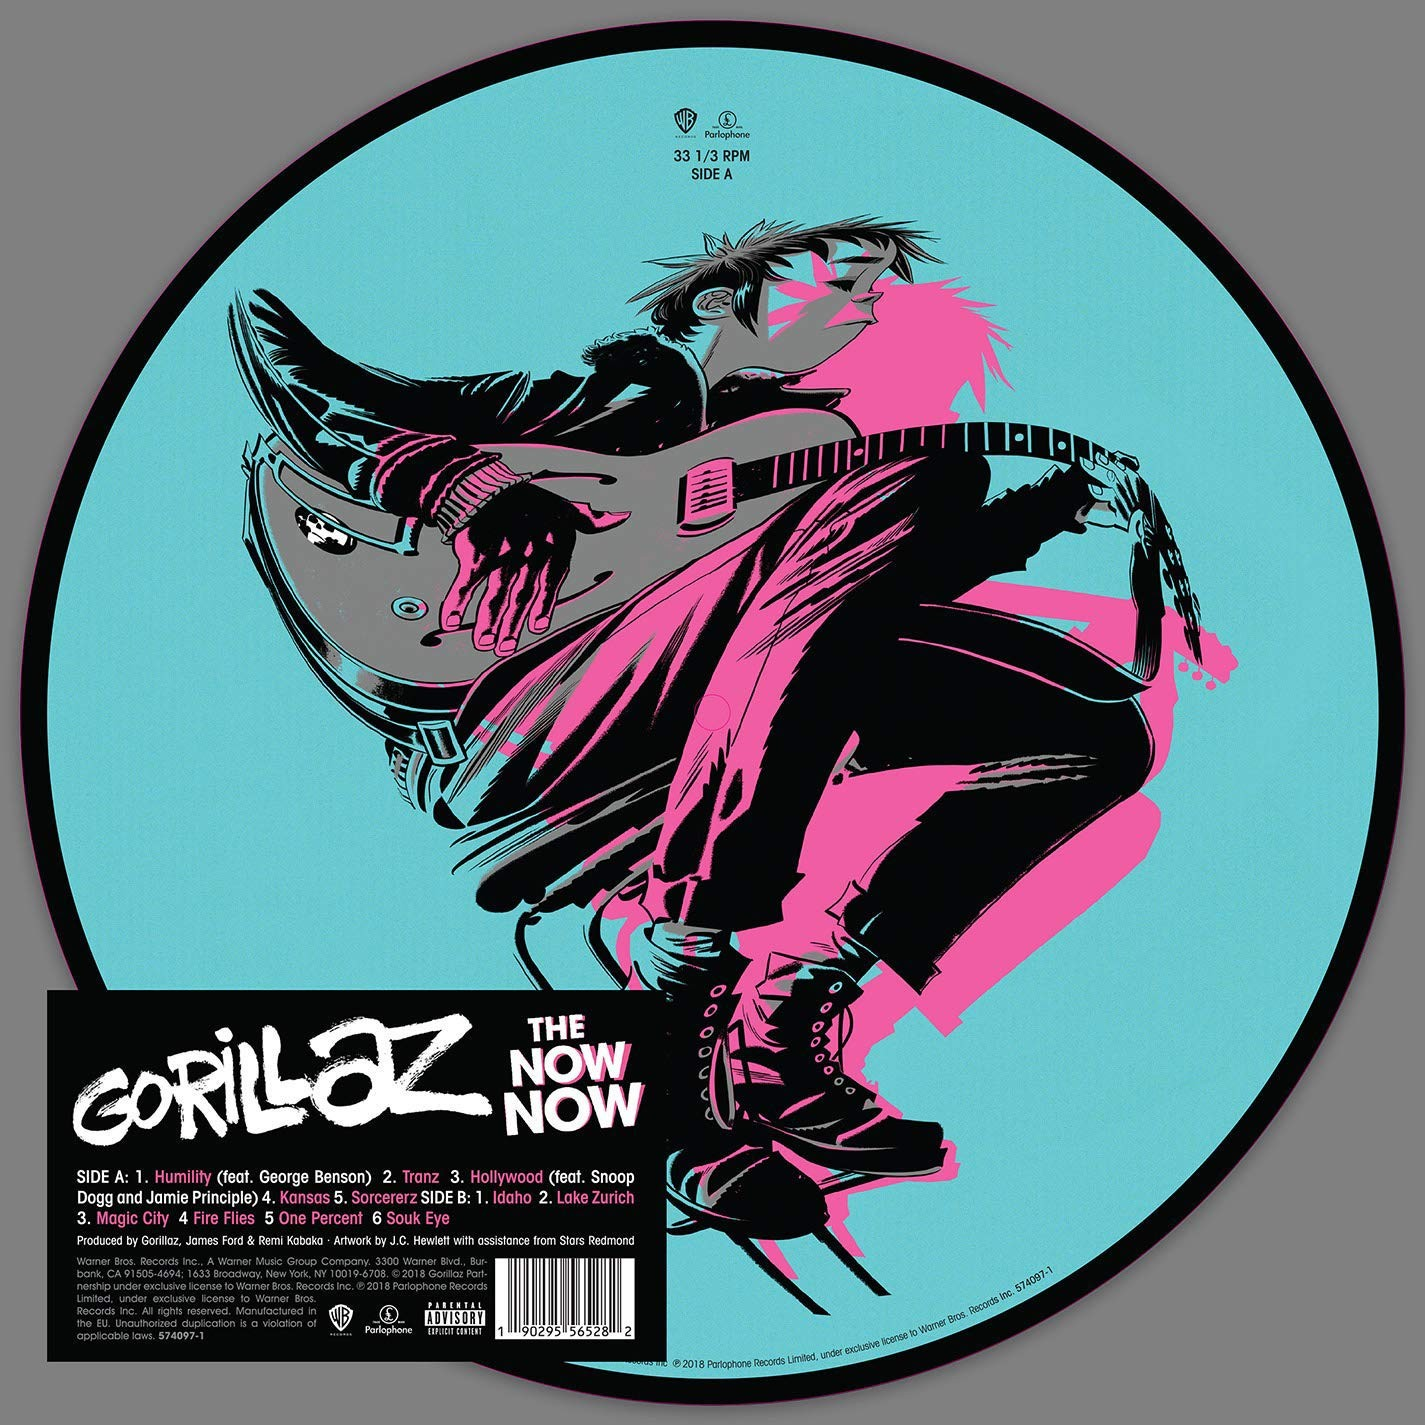 Gorillaz - Now Now (Picture Disc) Vinyl LP